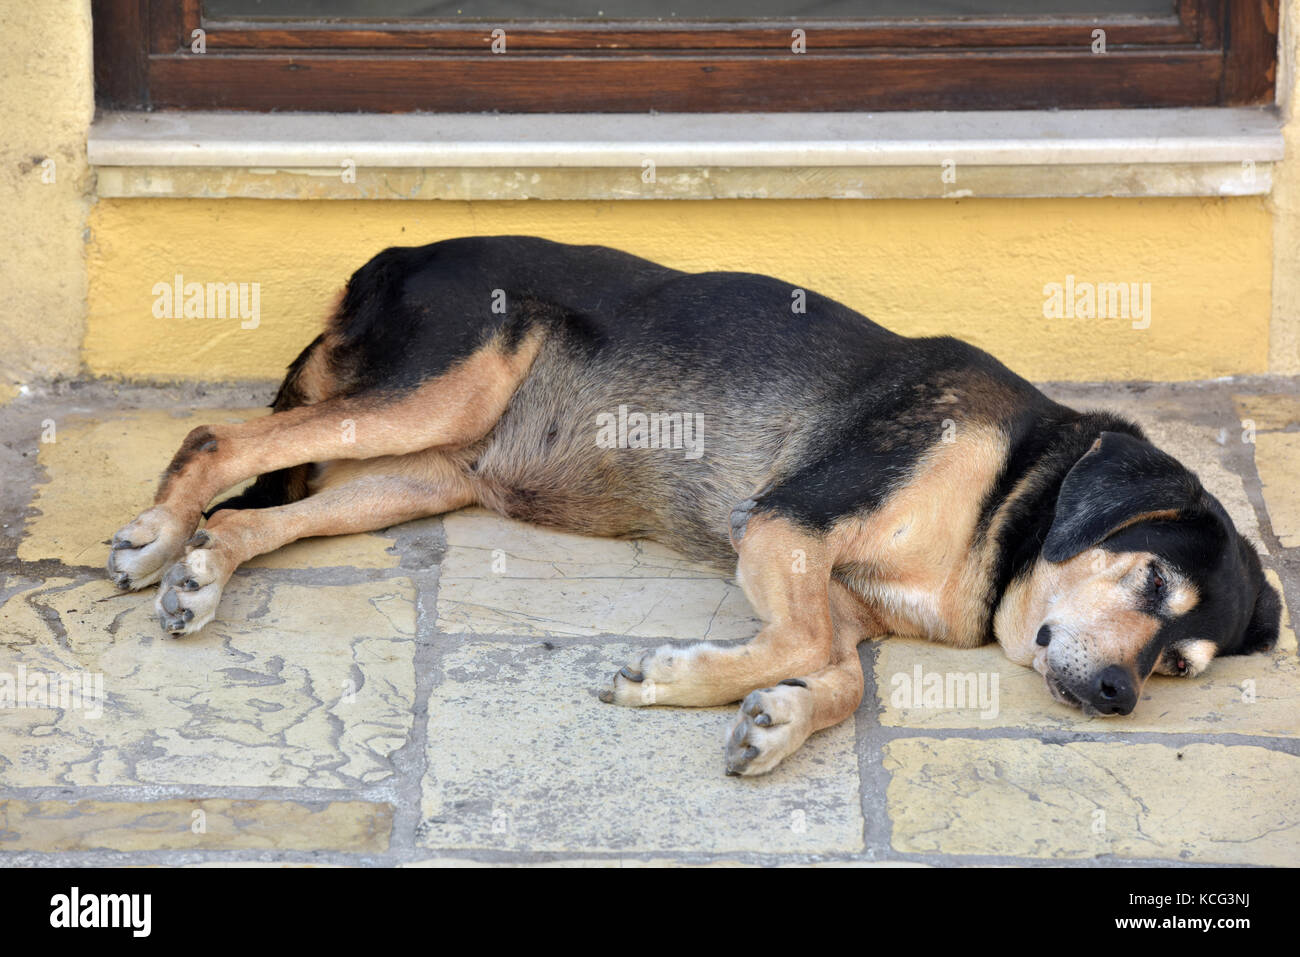 a lazy tired dog or pooch sleeping on the pavement at the threshold of a door to it's owners house. Mans best - Stock Image